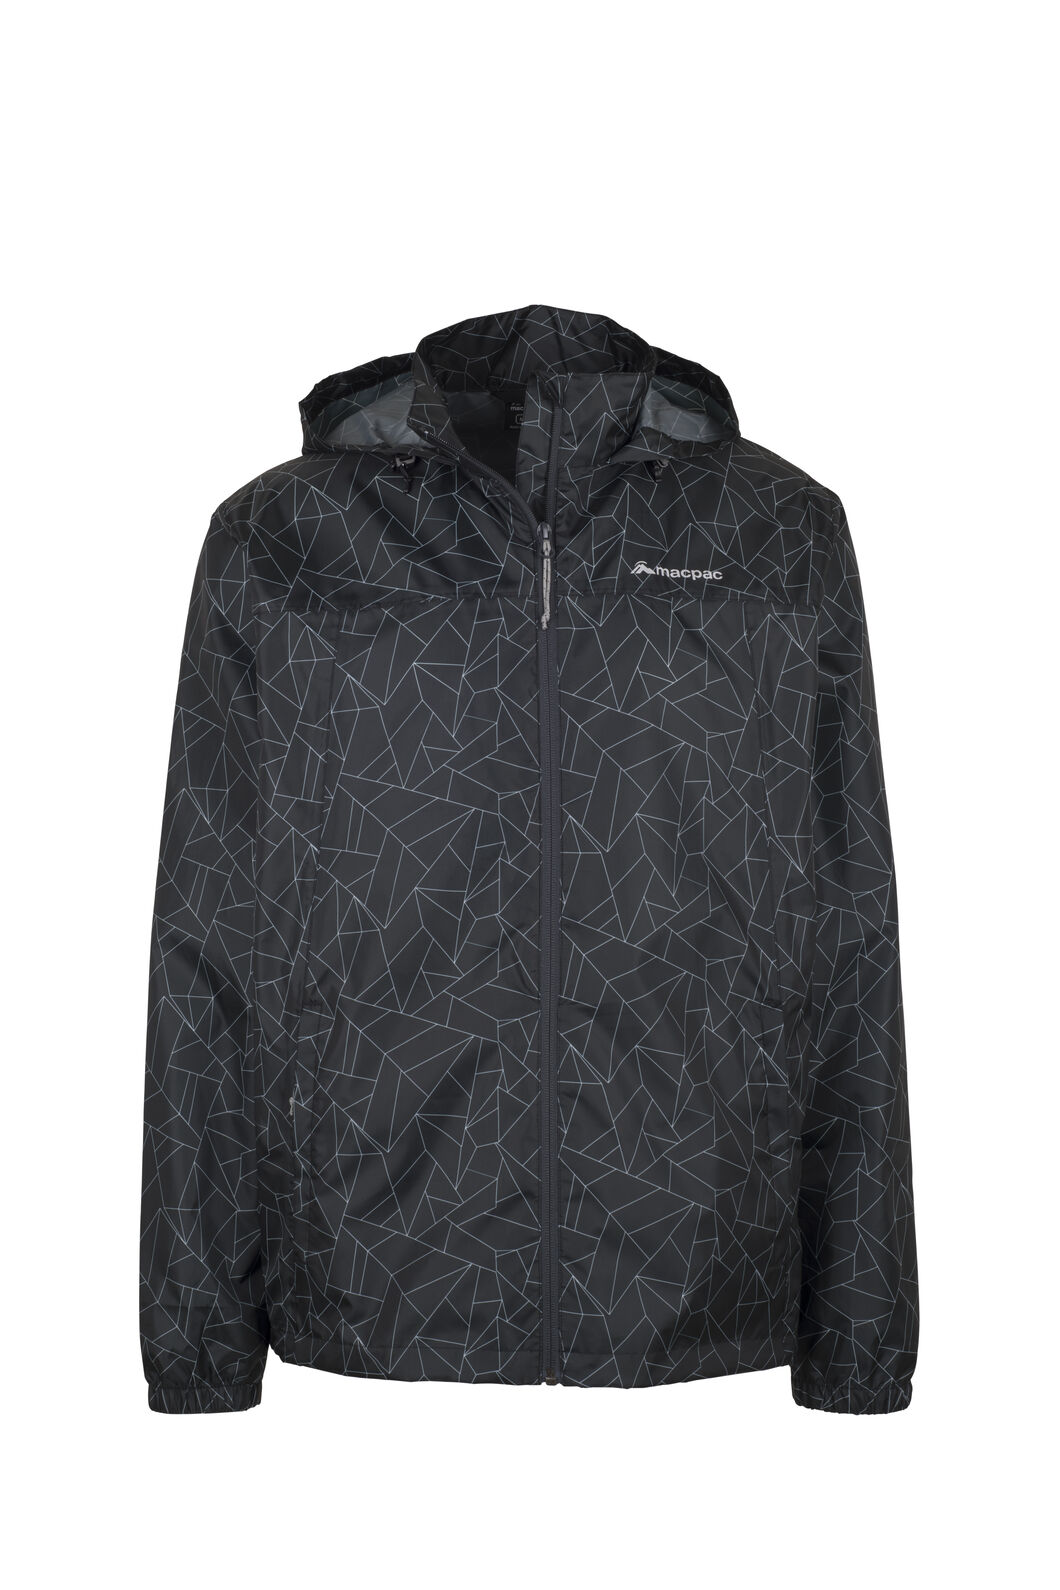 Macpac Pack-It-Jacket - Unisex, Black Geo Print, hi-res